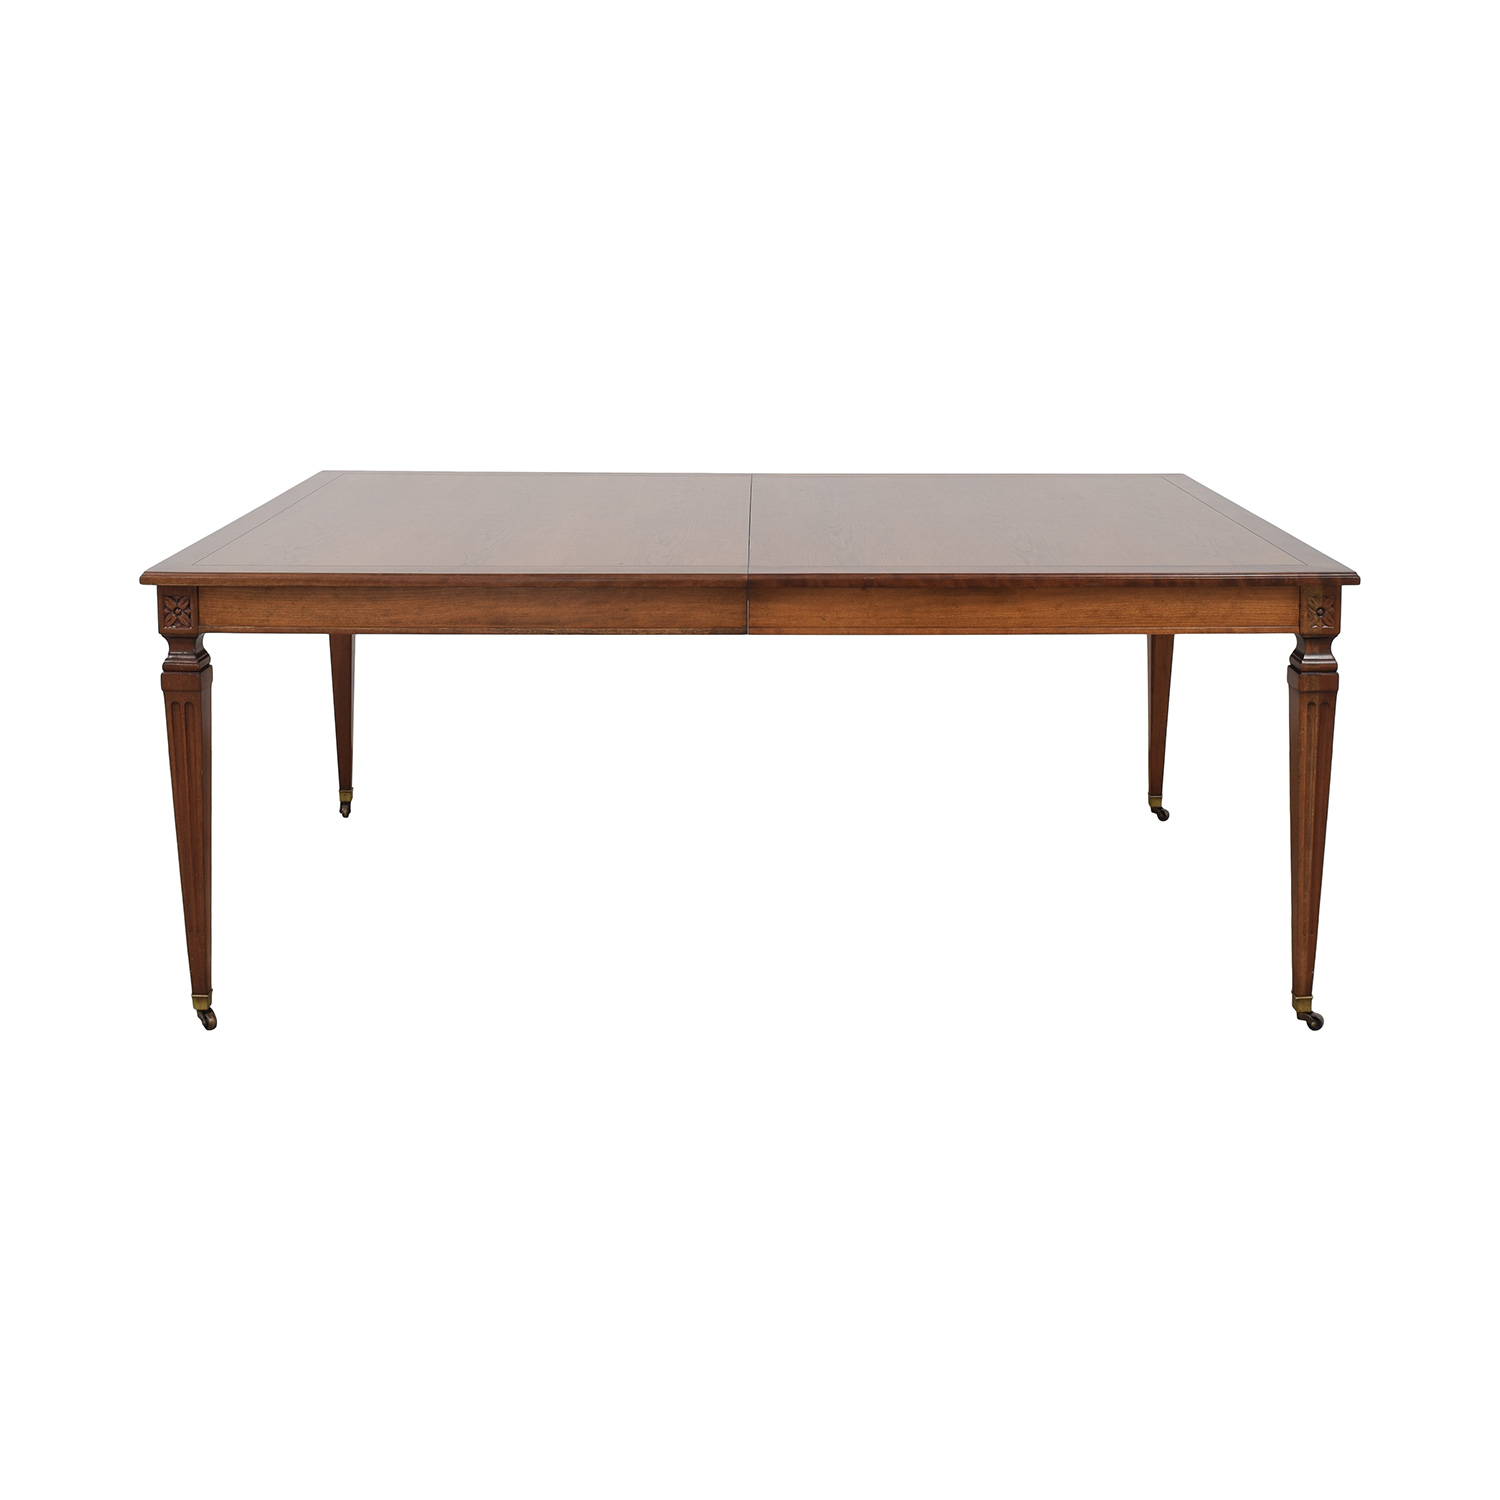 Extension Dining Table dimensions